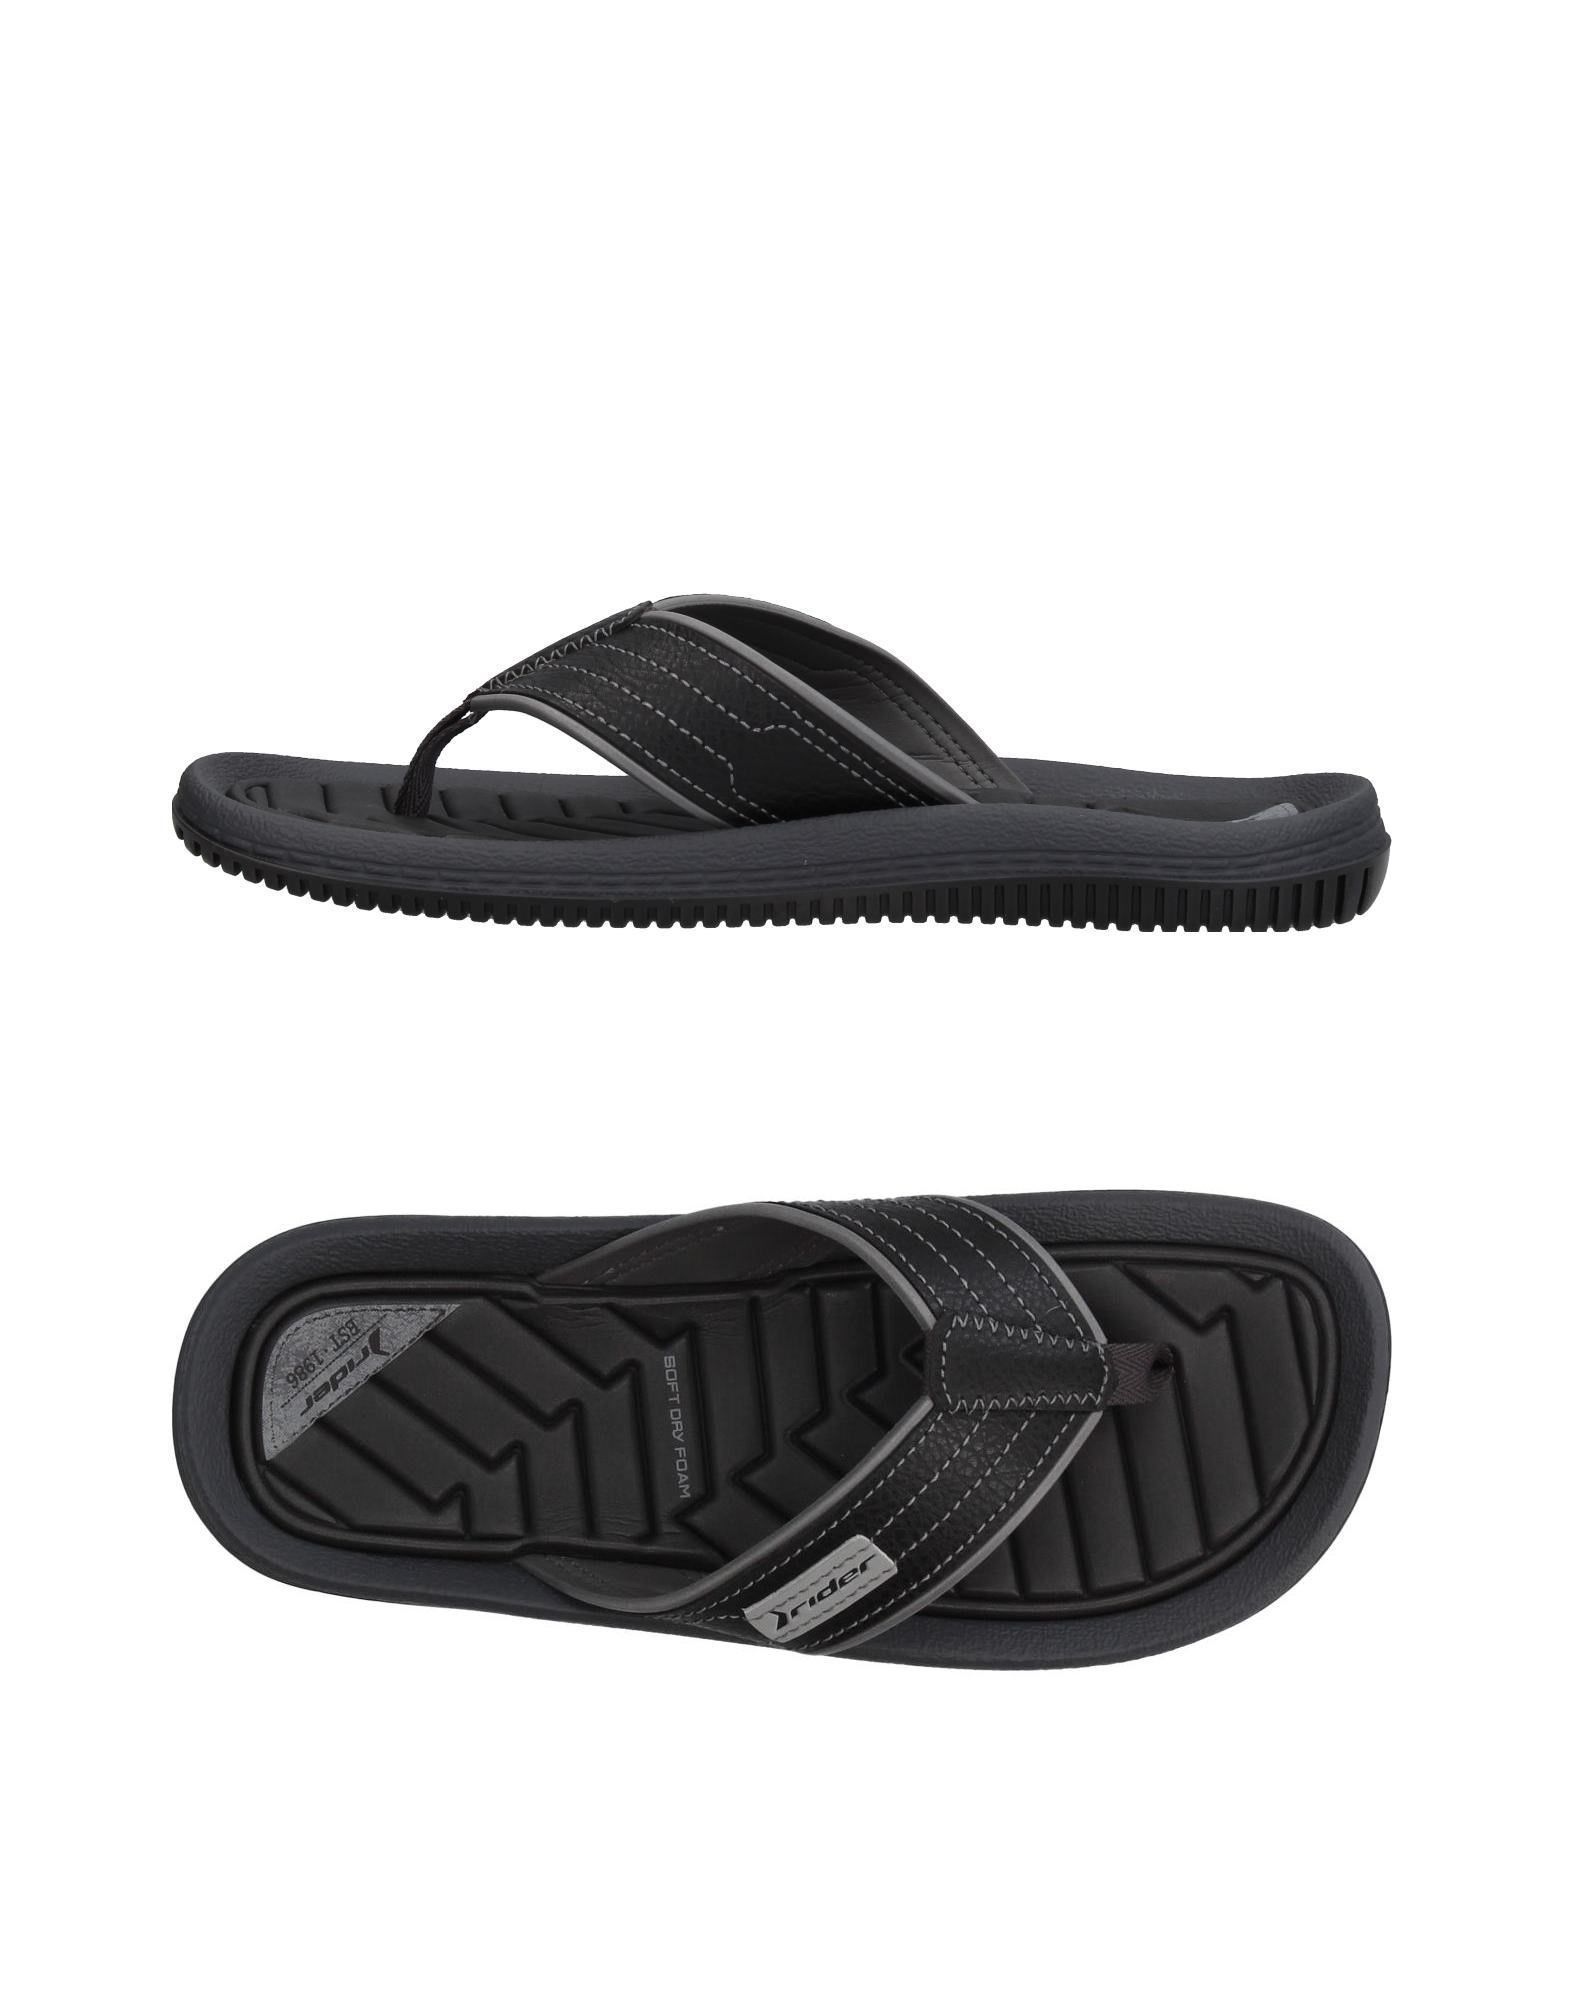 3da5c78de01f Rider Men Flip Flops on YOOX. The best online selection of Flip Flops  Rider. YOOX exclusive items of Italian and international designers - Secure  payments